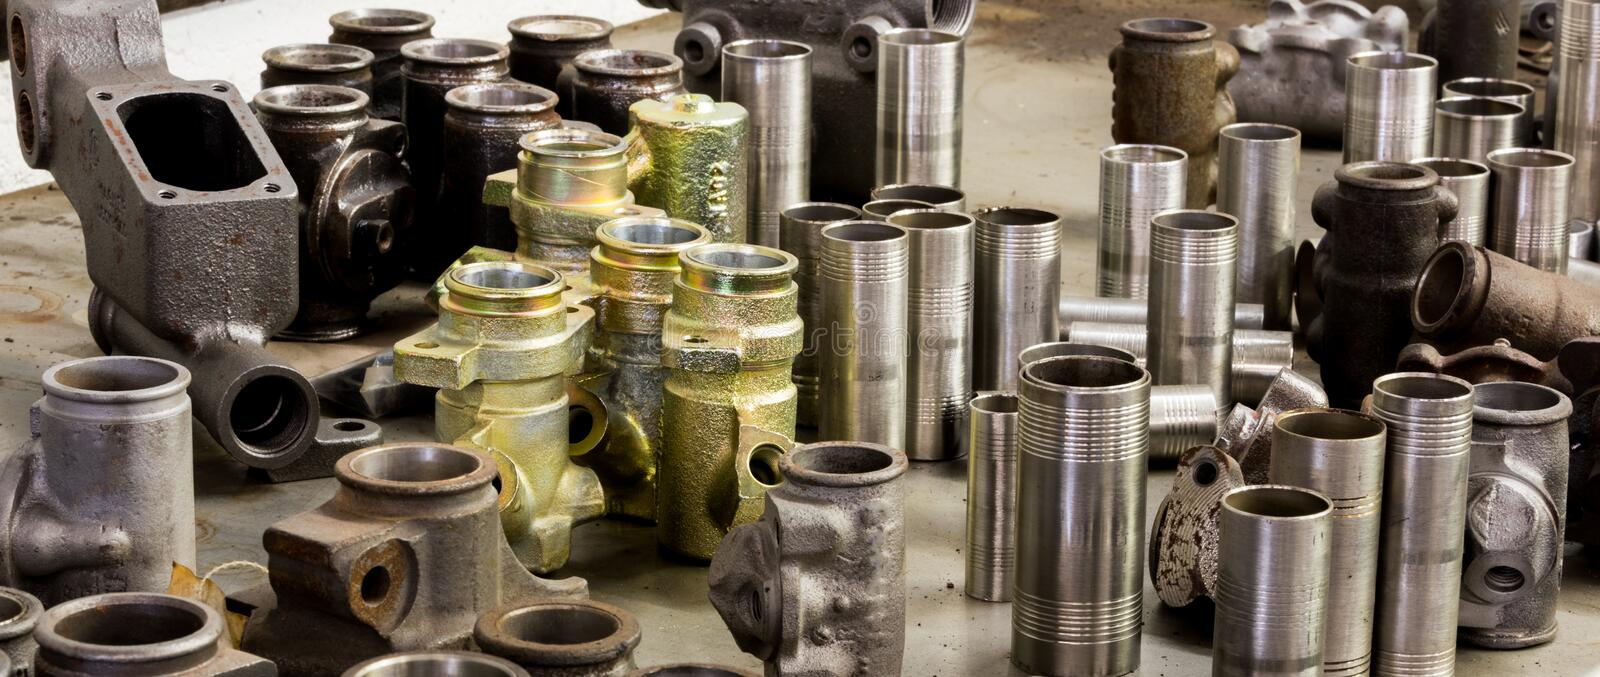 Vintage antique automotive machine shop stainless steel sleeved hydraulic cylinders and tubing. Assortment stock image